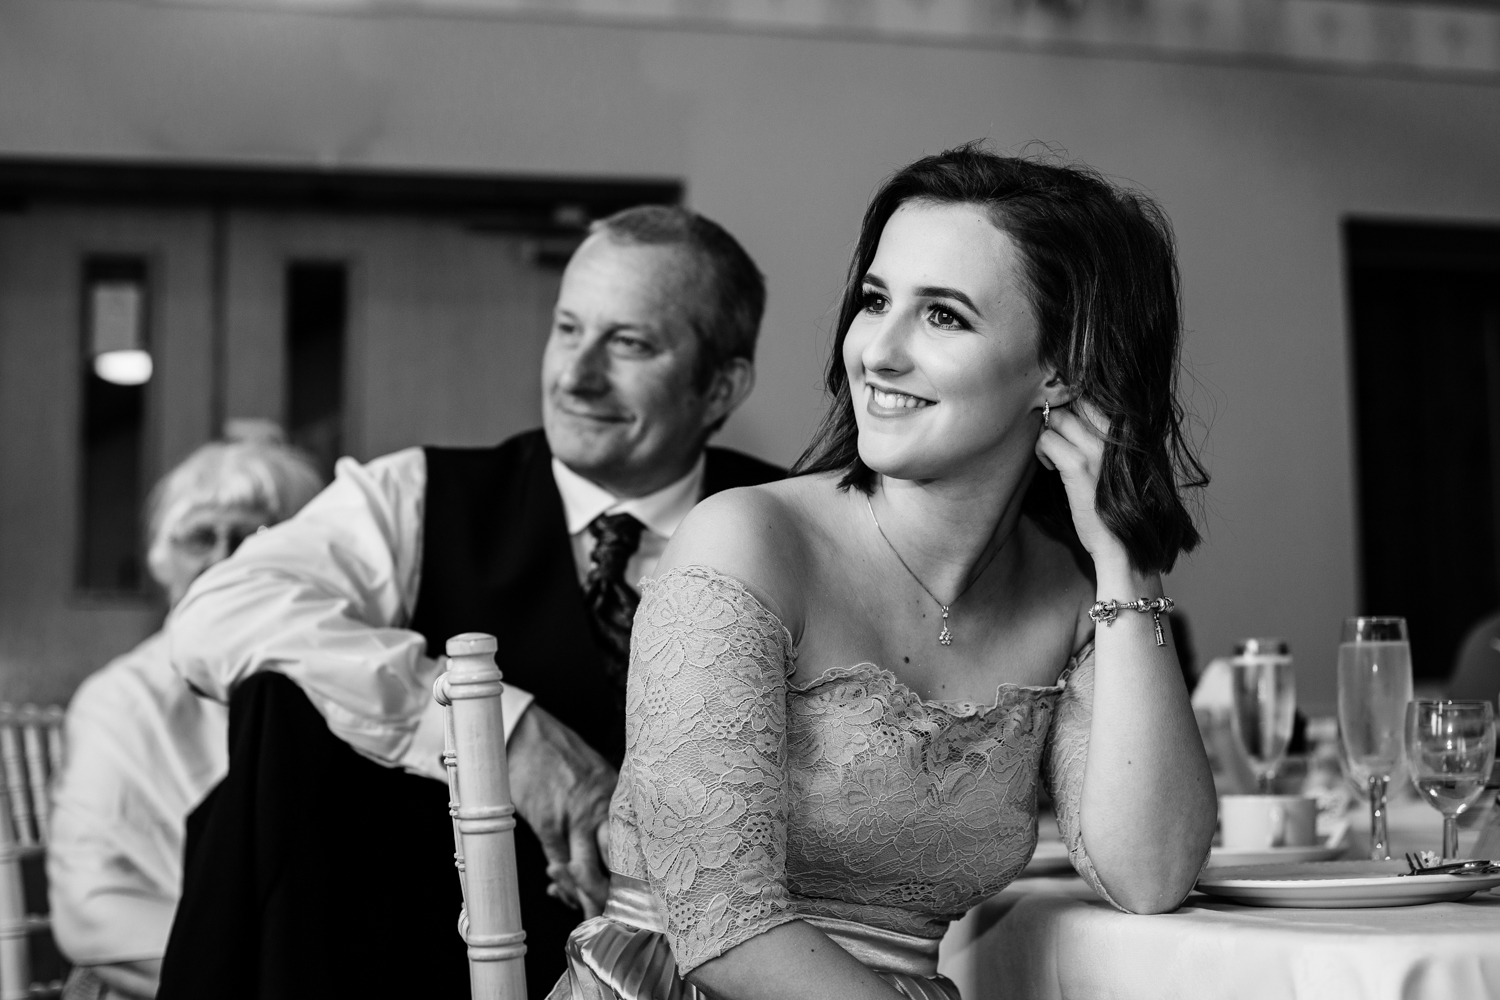 Lancashire-wedding-photographer-adele-and-alex-101.jpg